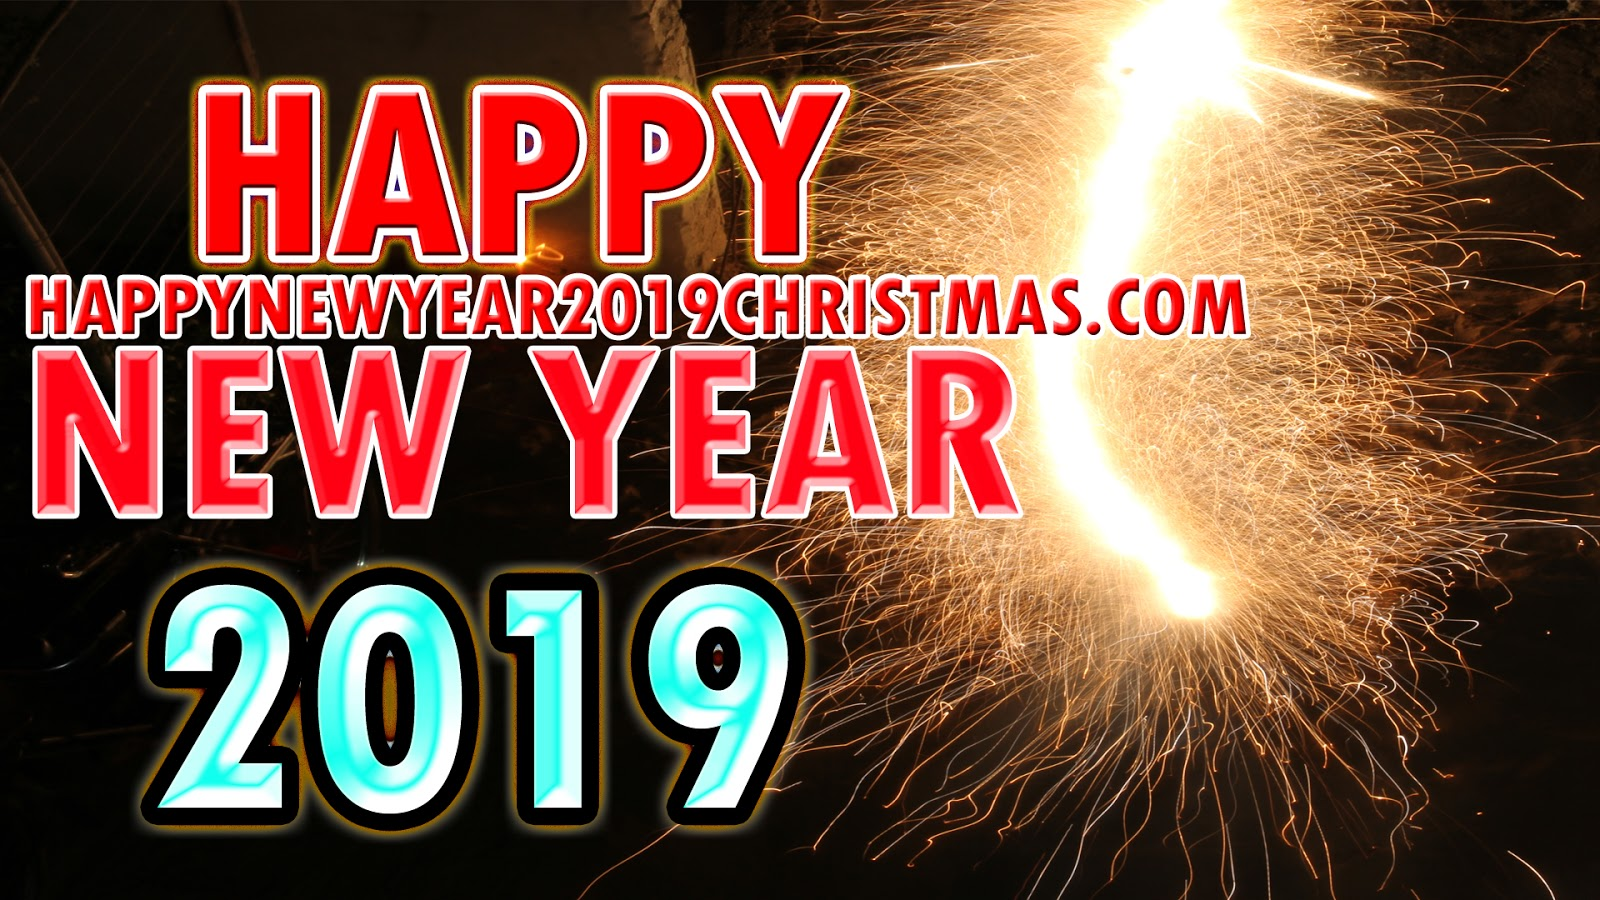 Happy New Year 2019 Fireworks Wallpaper | Happy New Year 2019 images ...